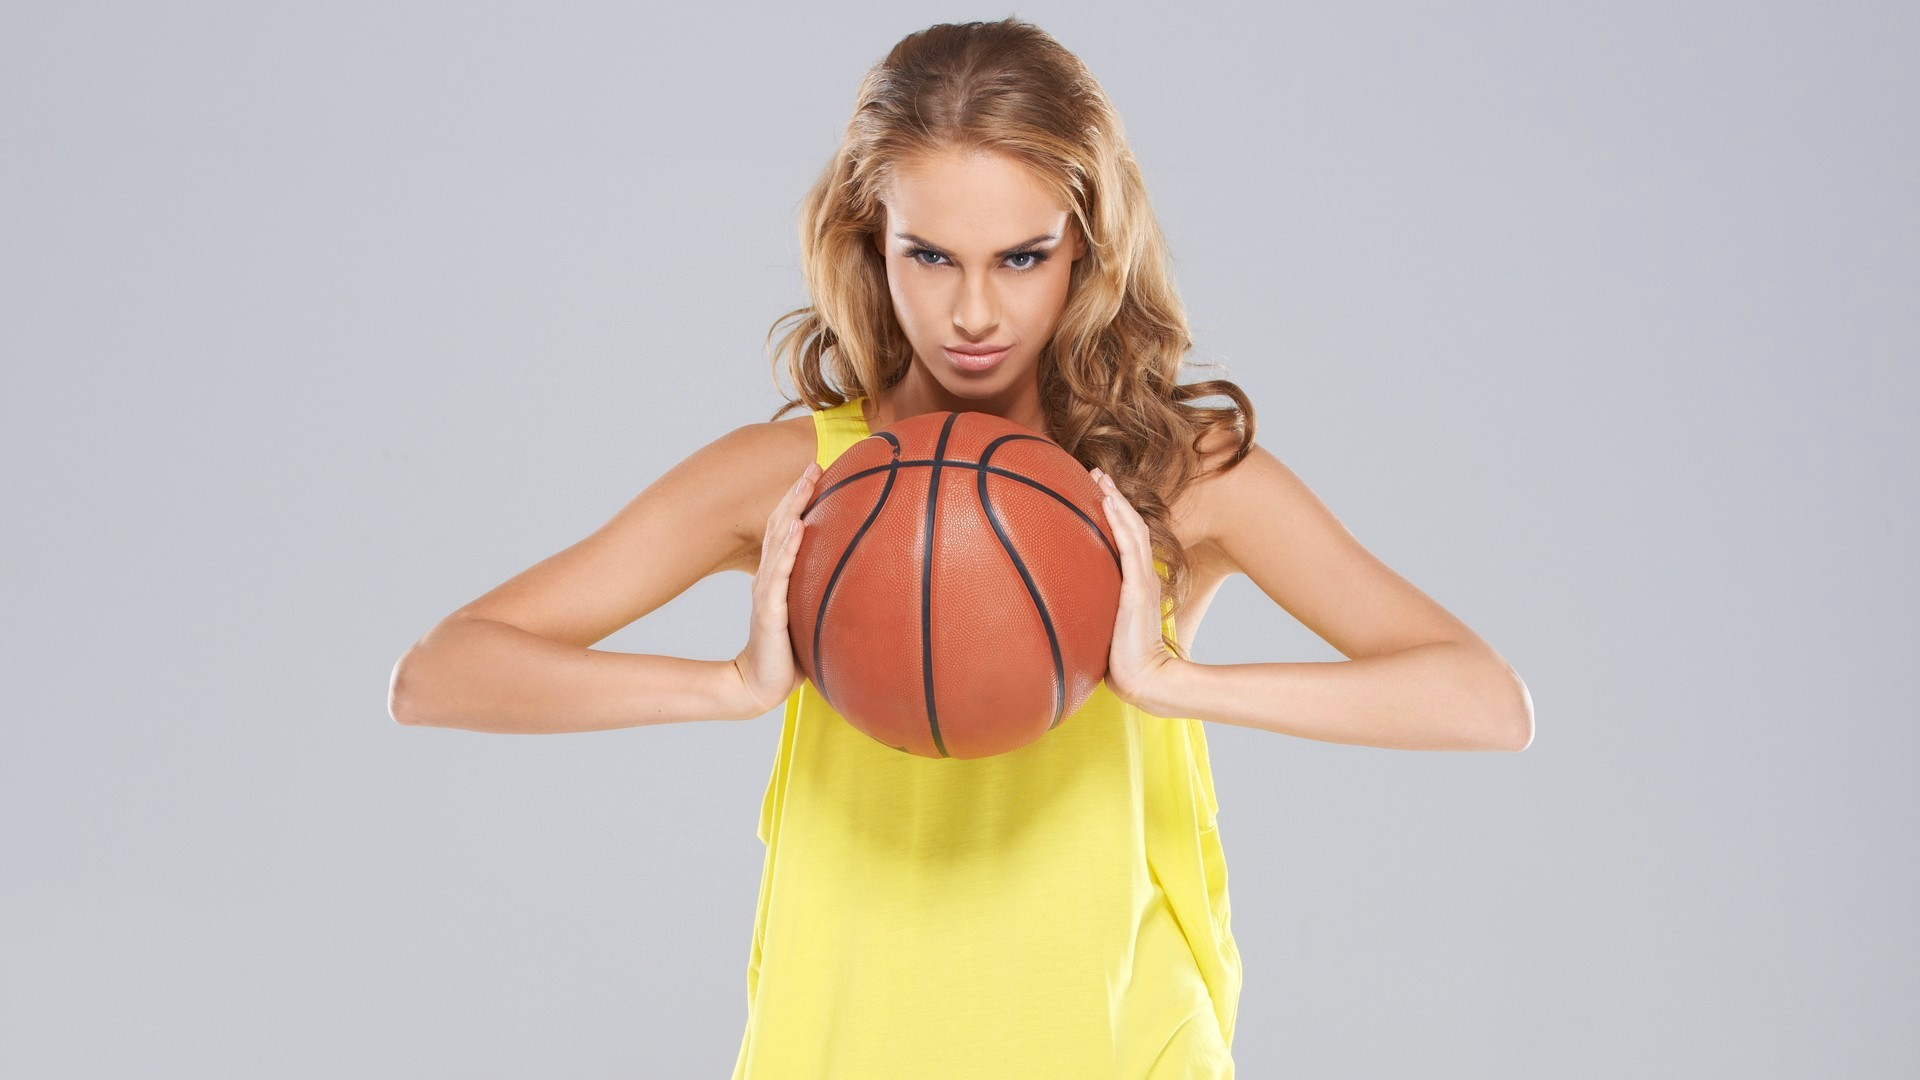 women, Model, Basketball Wallpapers HD / Desktop and Mobile Backgrounds